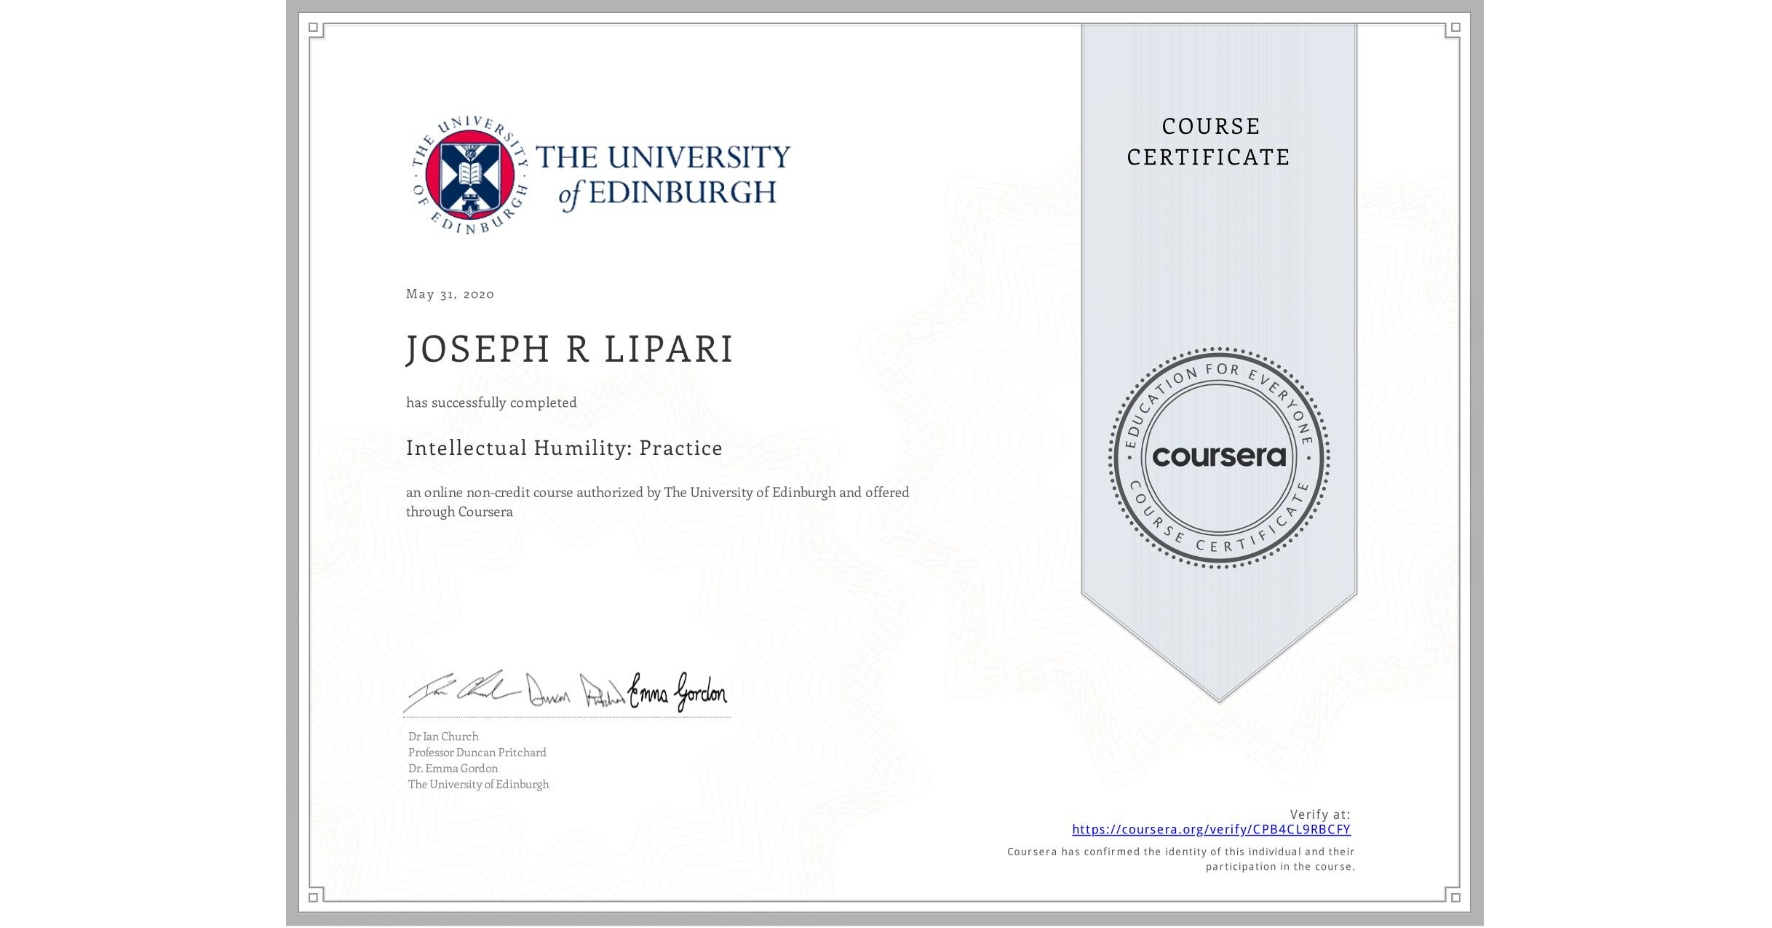 View certificate for JOSEPH R  LIPARI, Intellectual Humility: Practice, an online non-credit course authorized by The University of Edinburgh and offered through Coursera